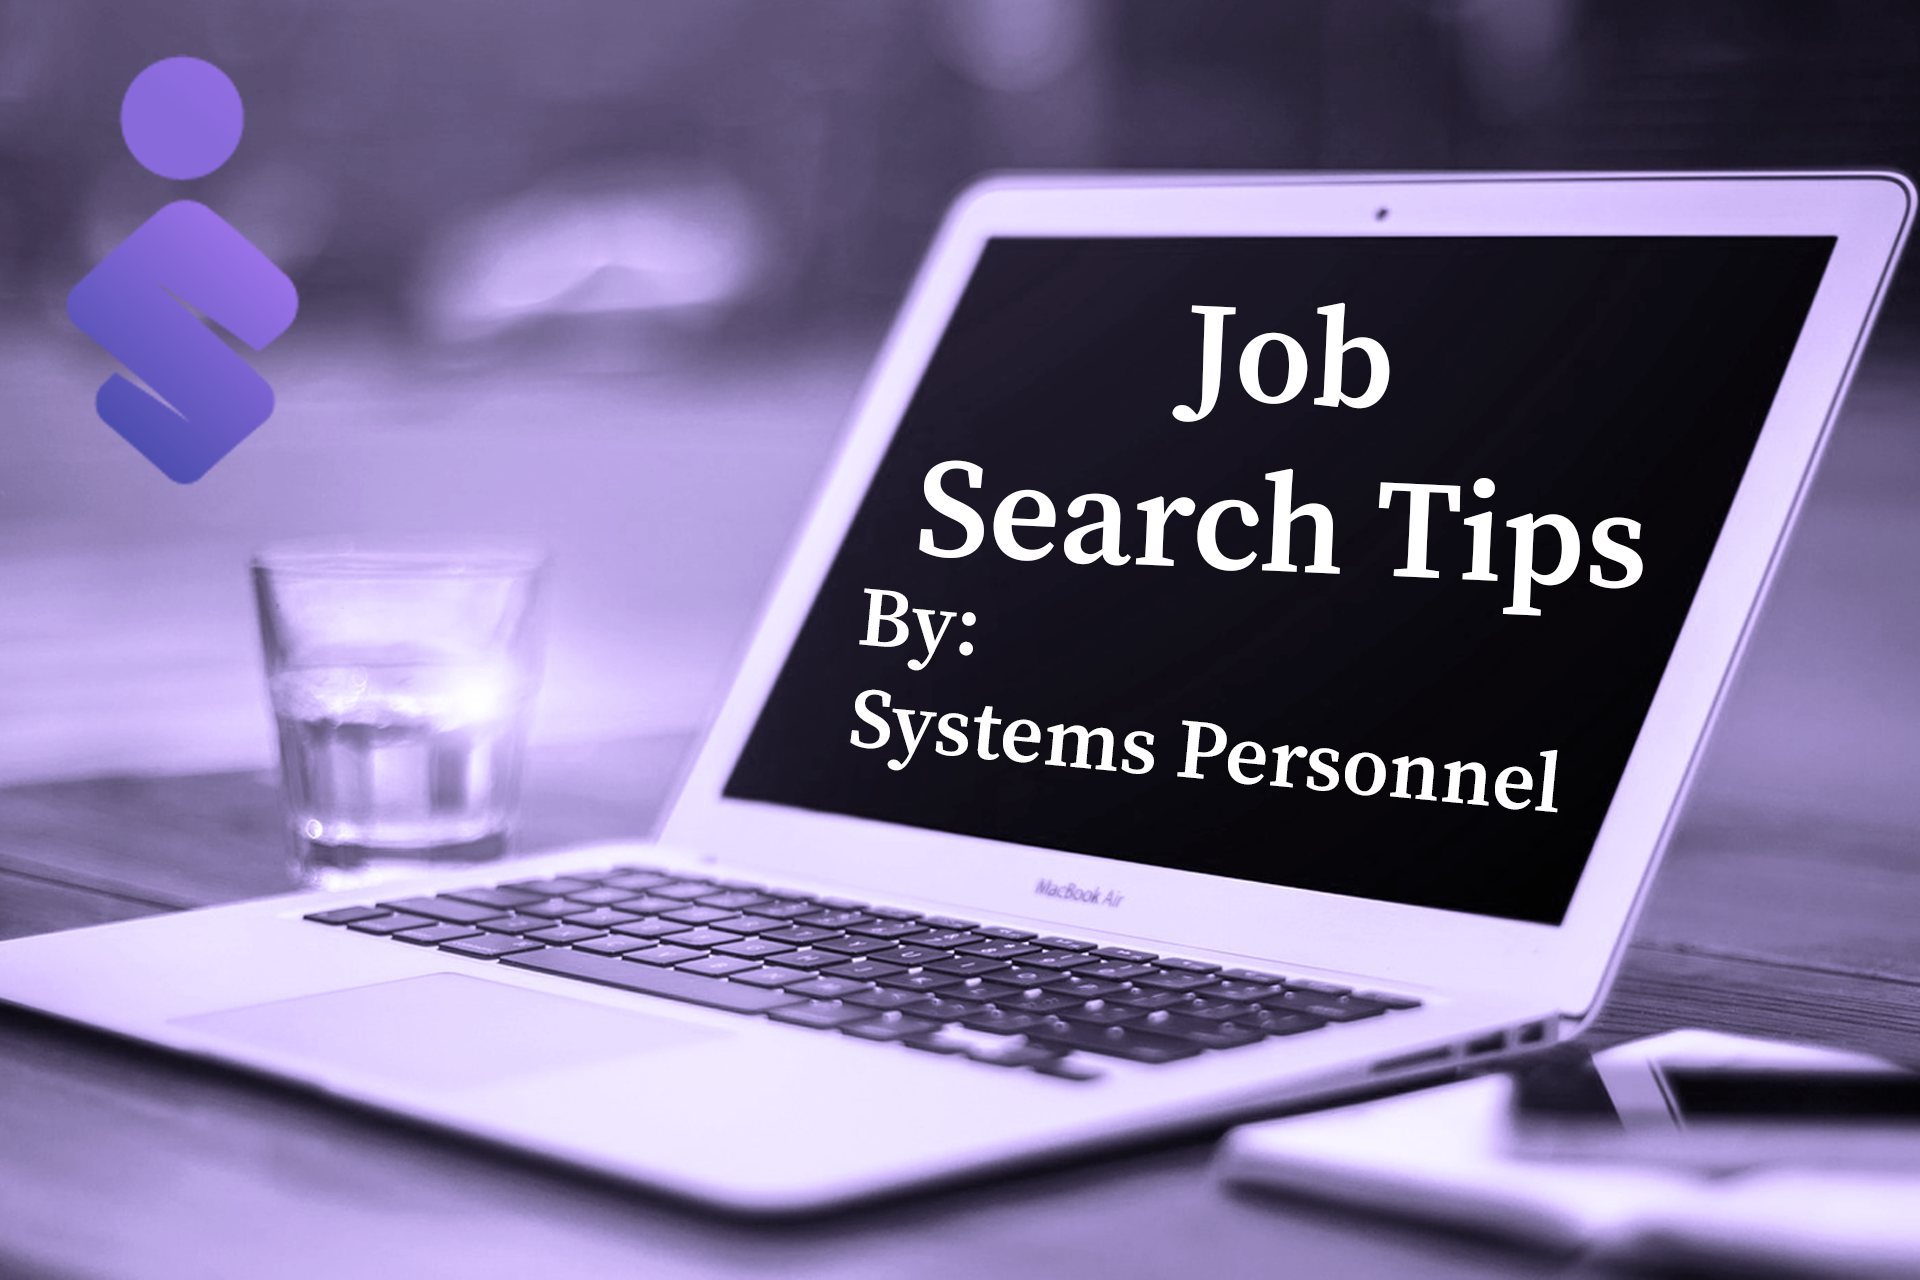 Job Search Tips - Thank you for submitting your resume!